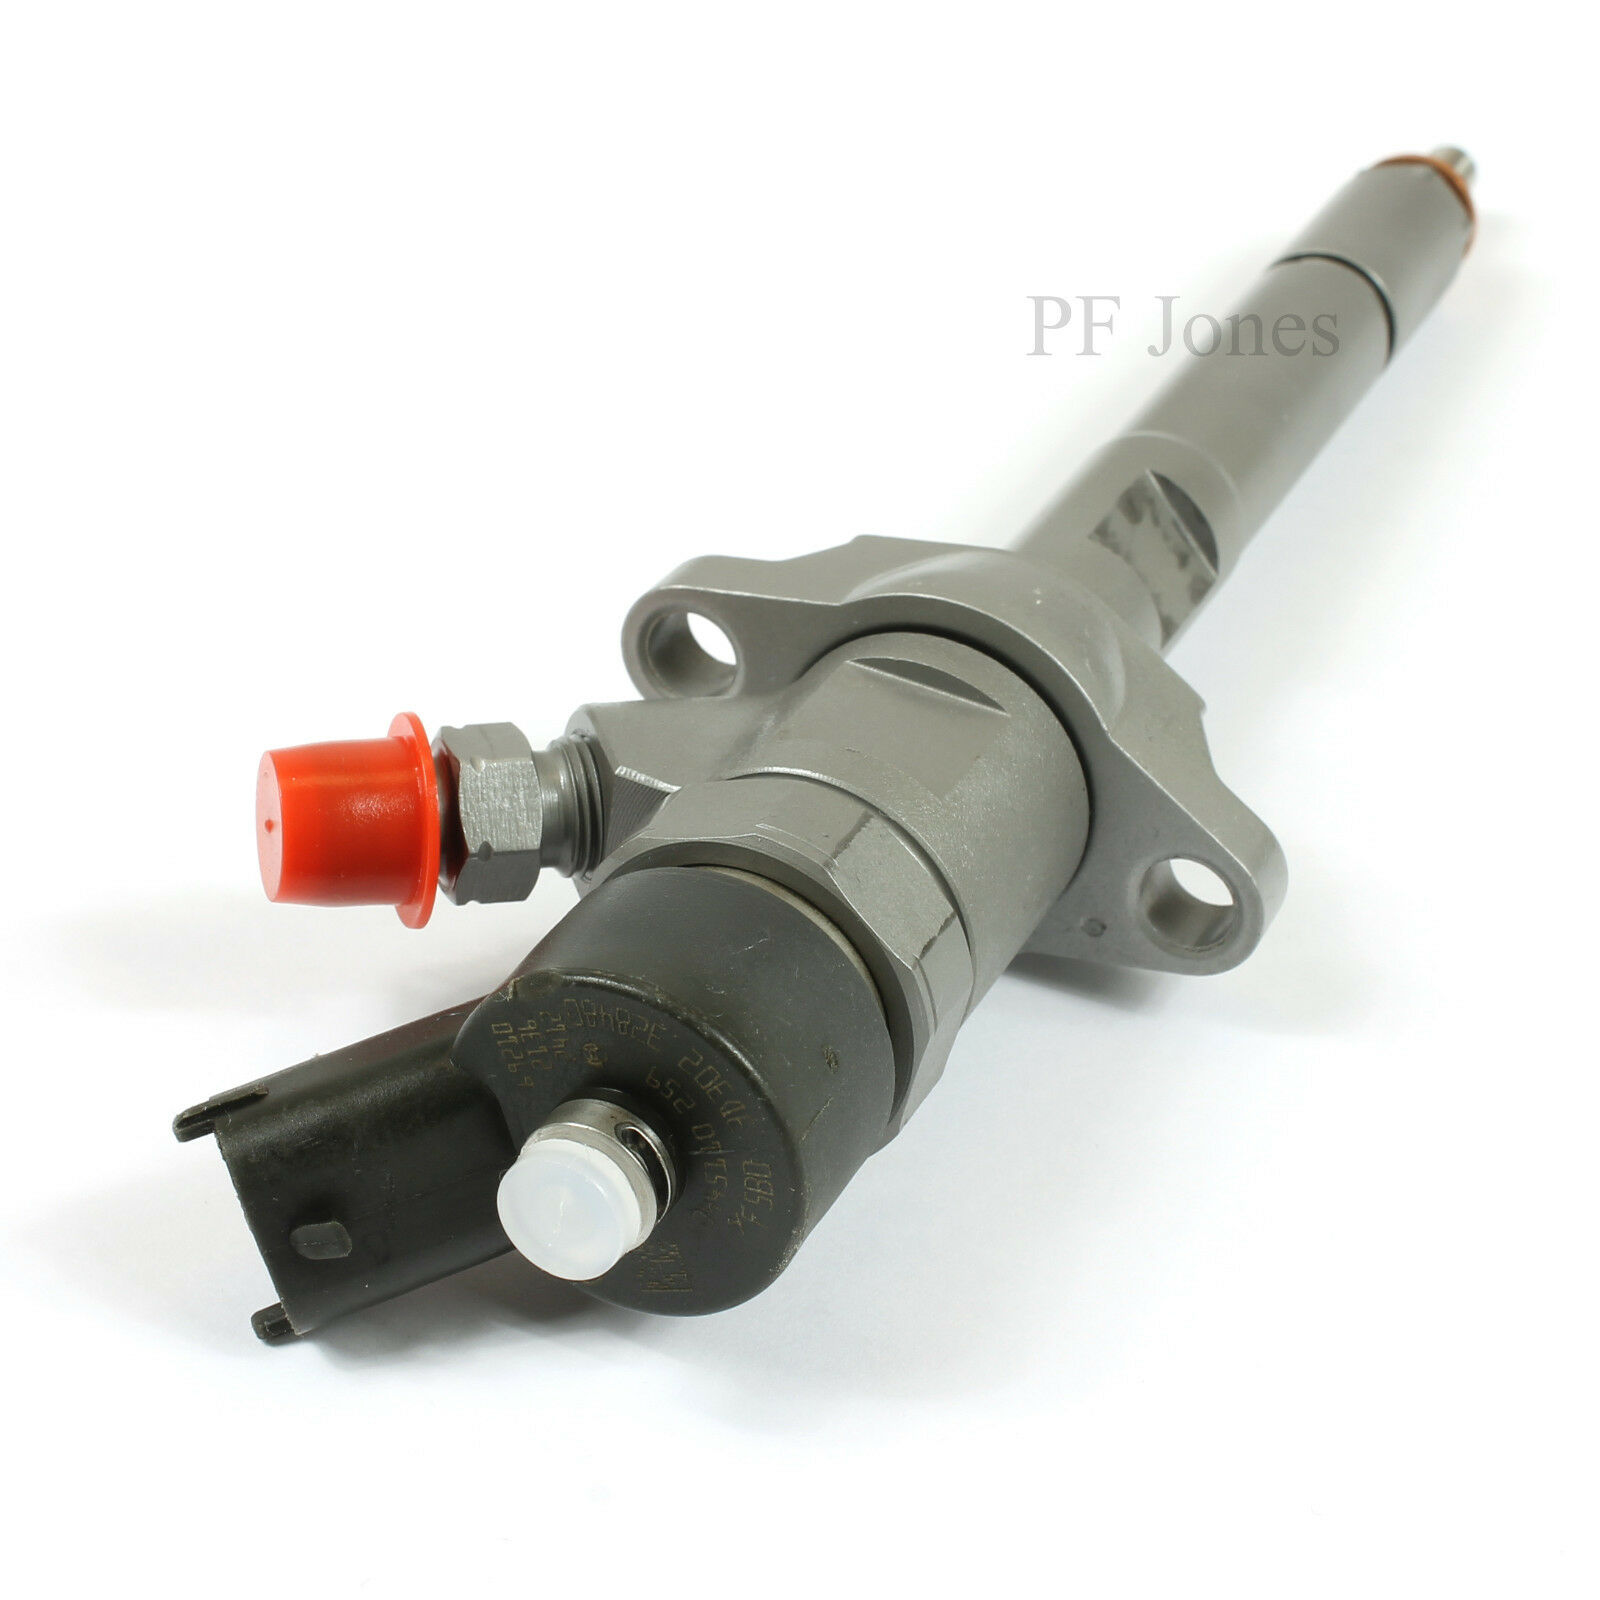 Reconditioned bosch diesel injector 0445110259 30 cash back see listing